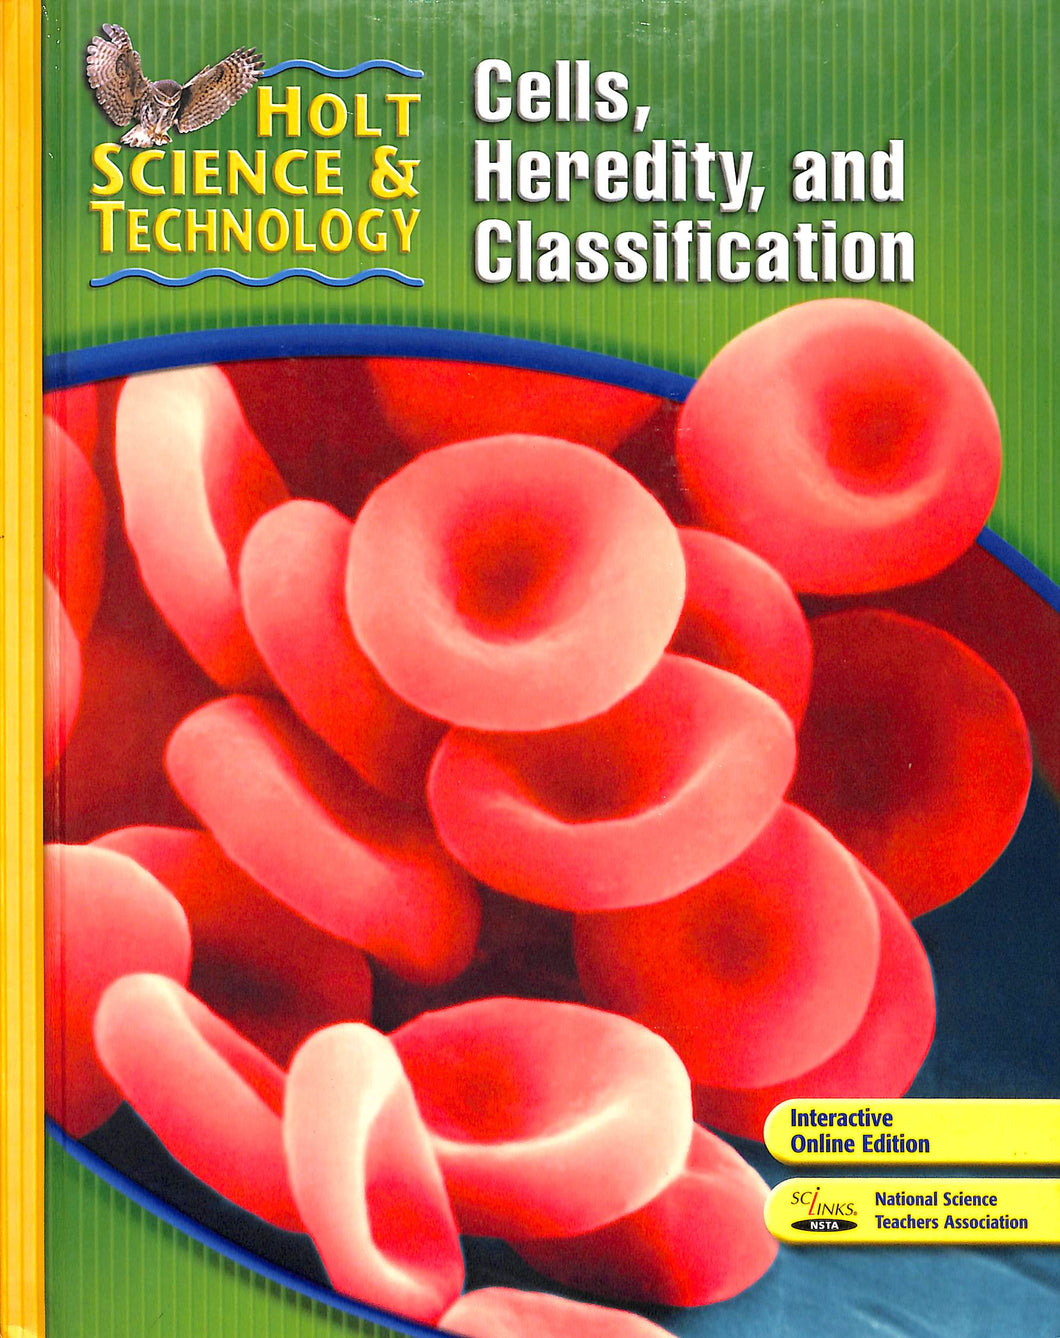 Holt Life Science Short Course C Textbook - Gently Used